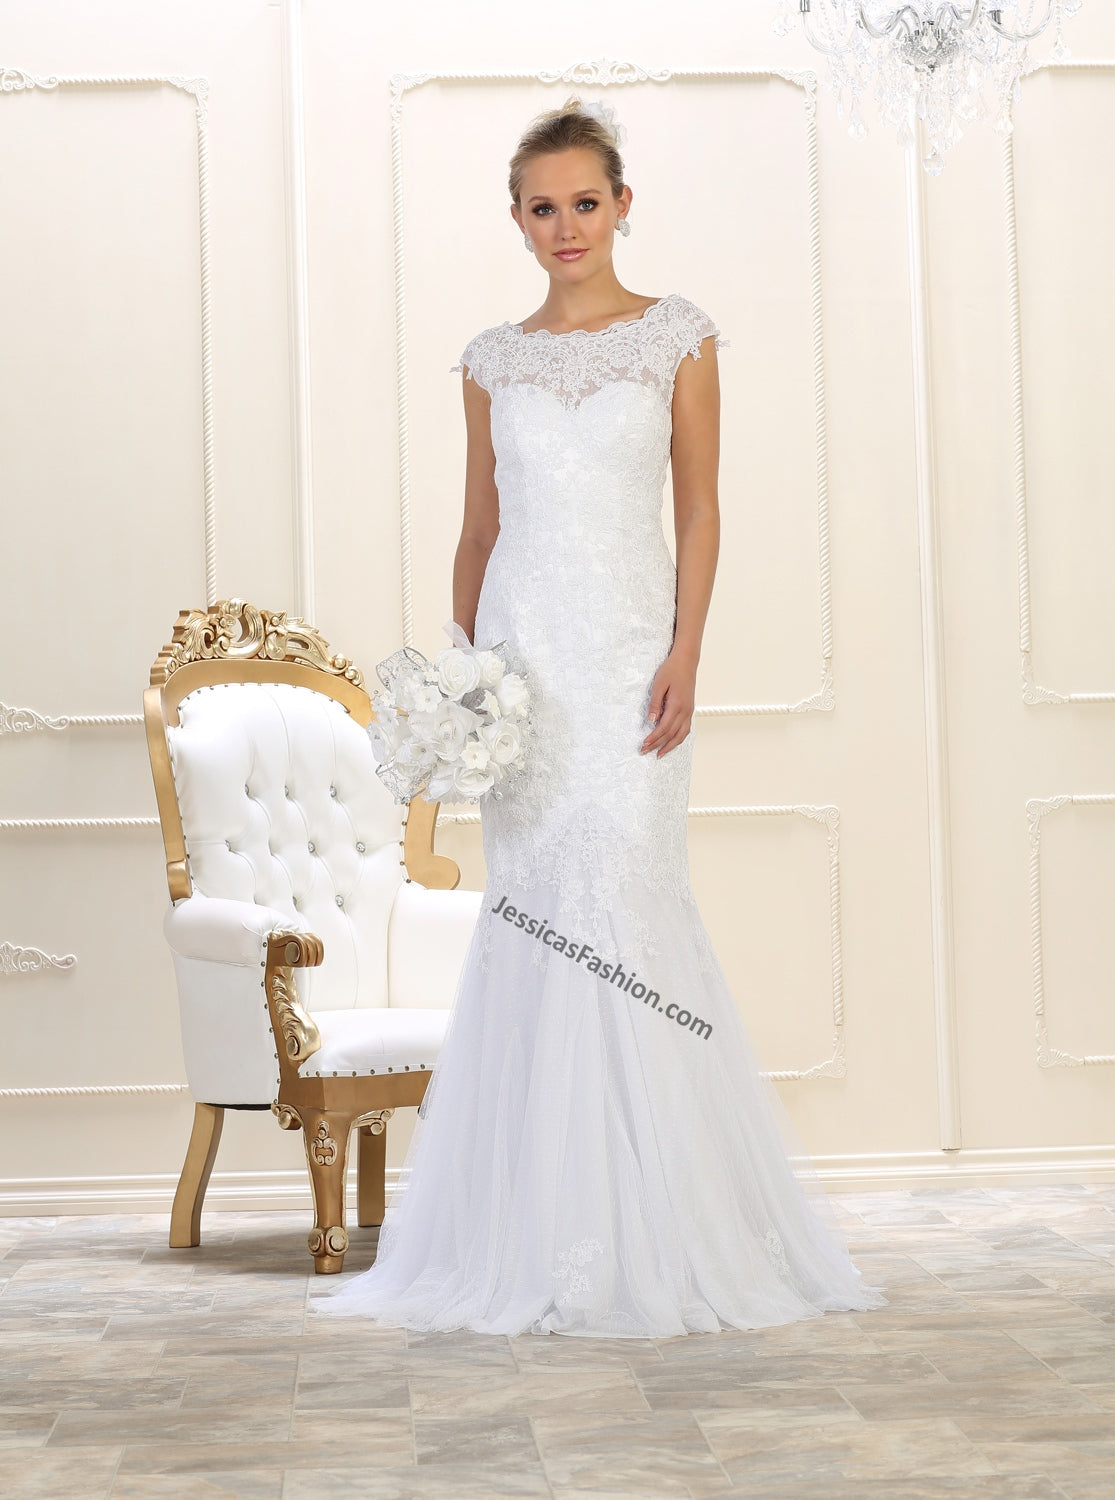 52b37e0ded62d Cap Sleeve Lace Applique & Rhinestone Mesh Wedding Gown- LAMQ1564. Hover to  zoom